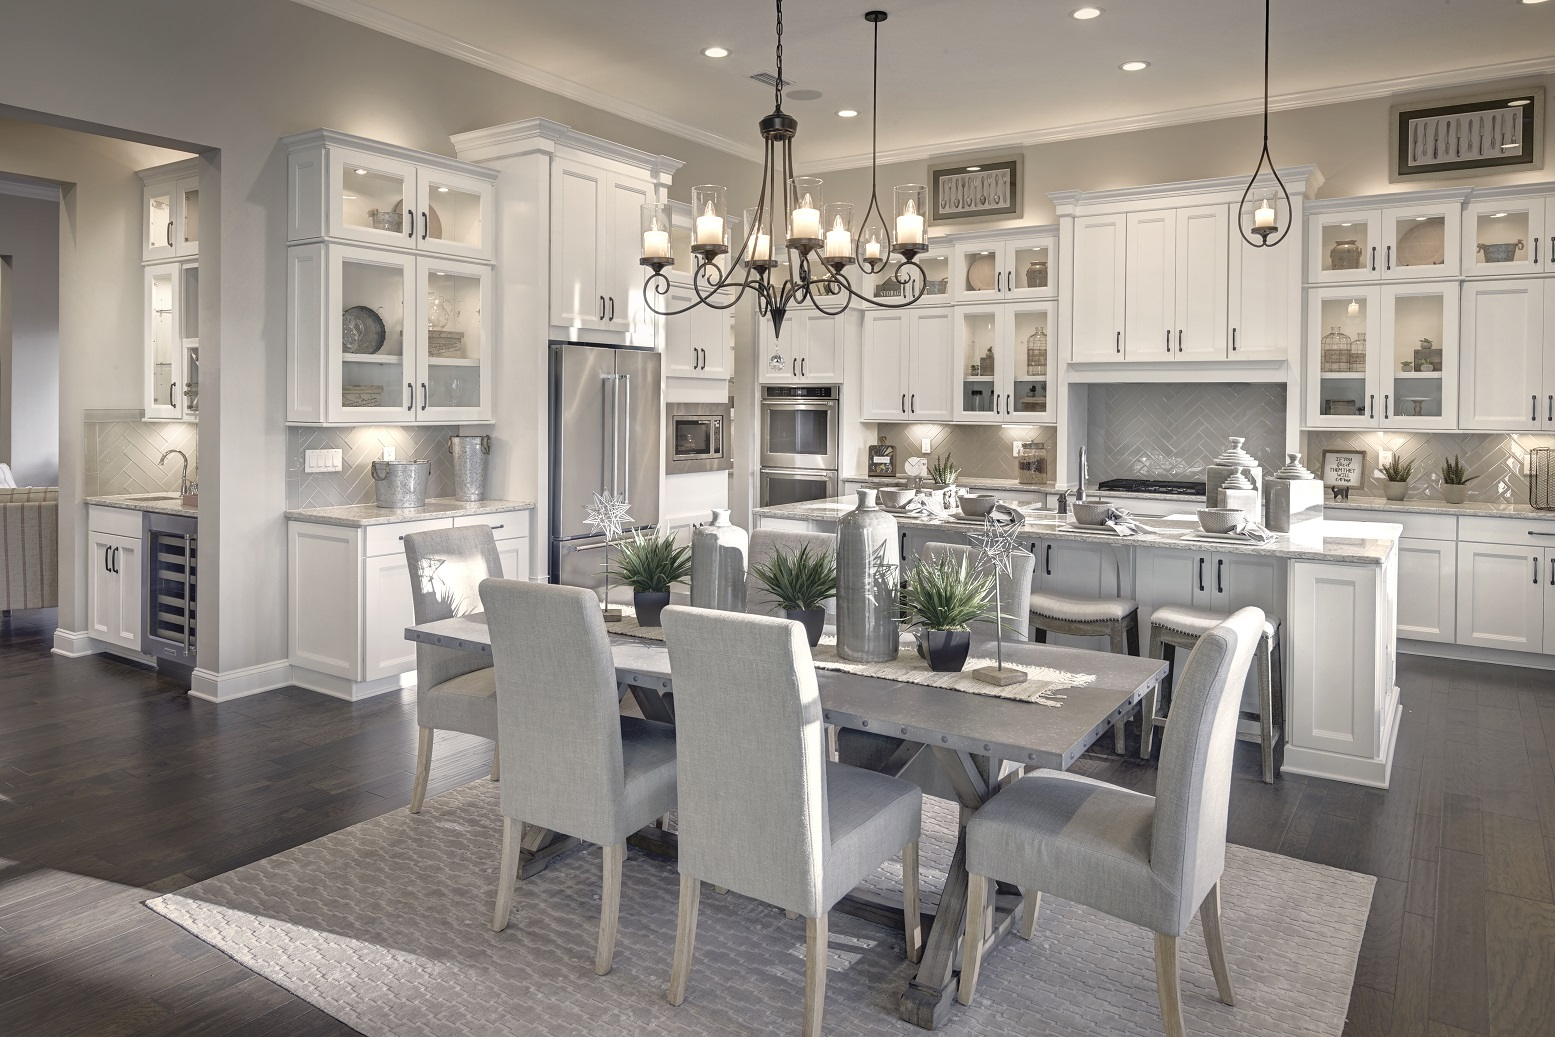 Mattamy homes rivertown opens six new decorated model homes for Photos of model homes